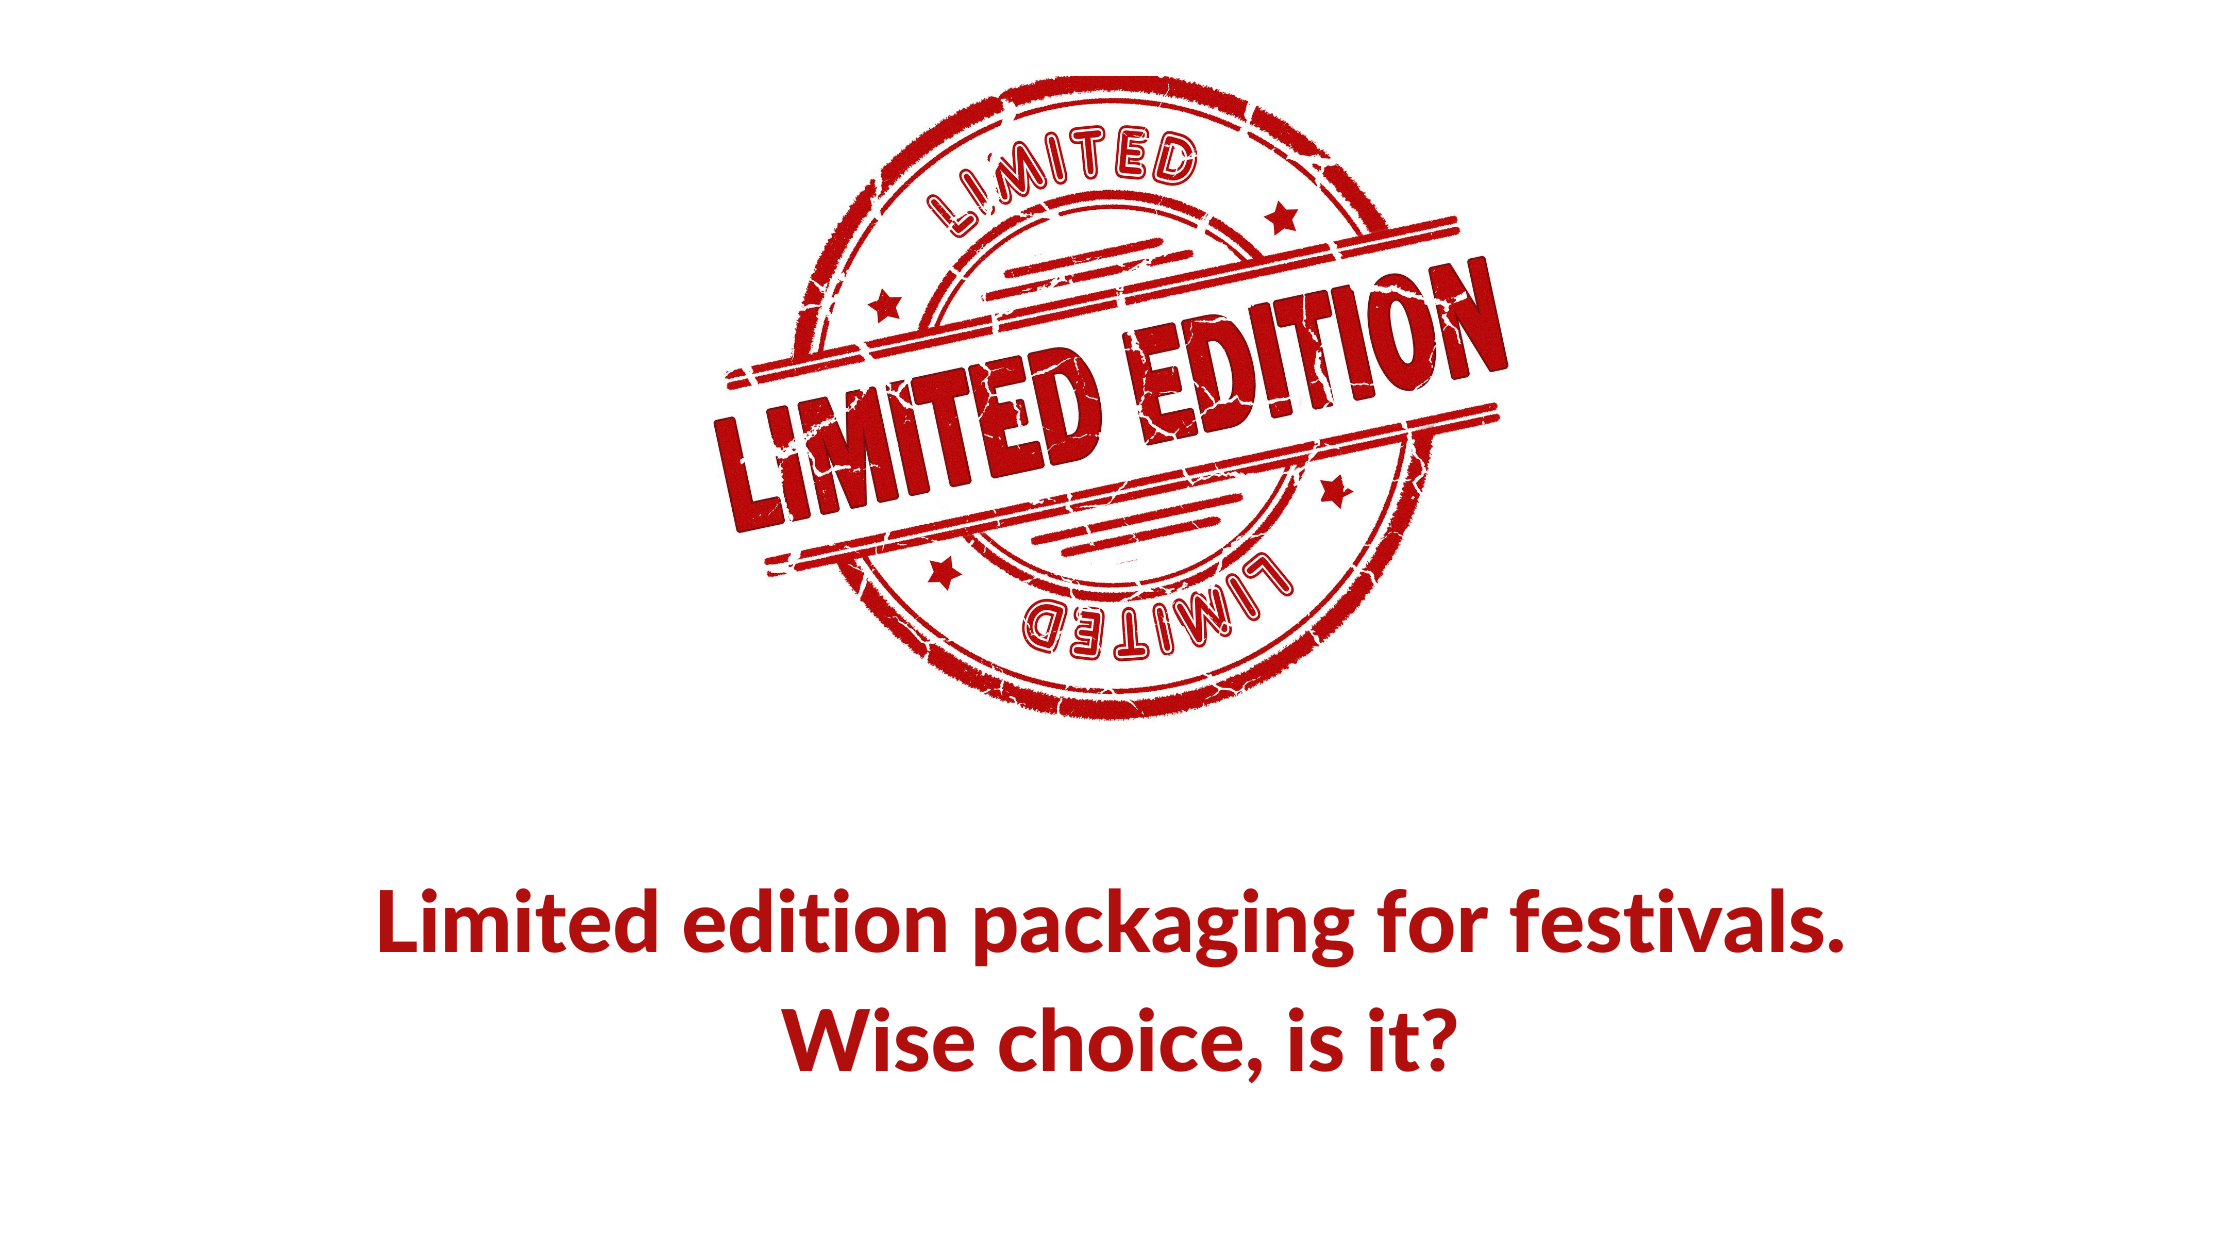 Limited edition packaging for festivals. Wise choice, is it?